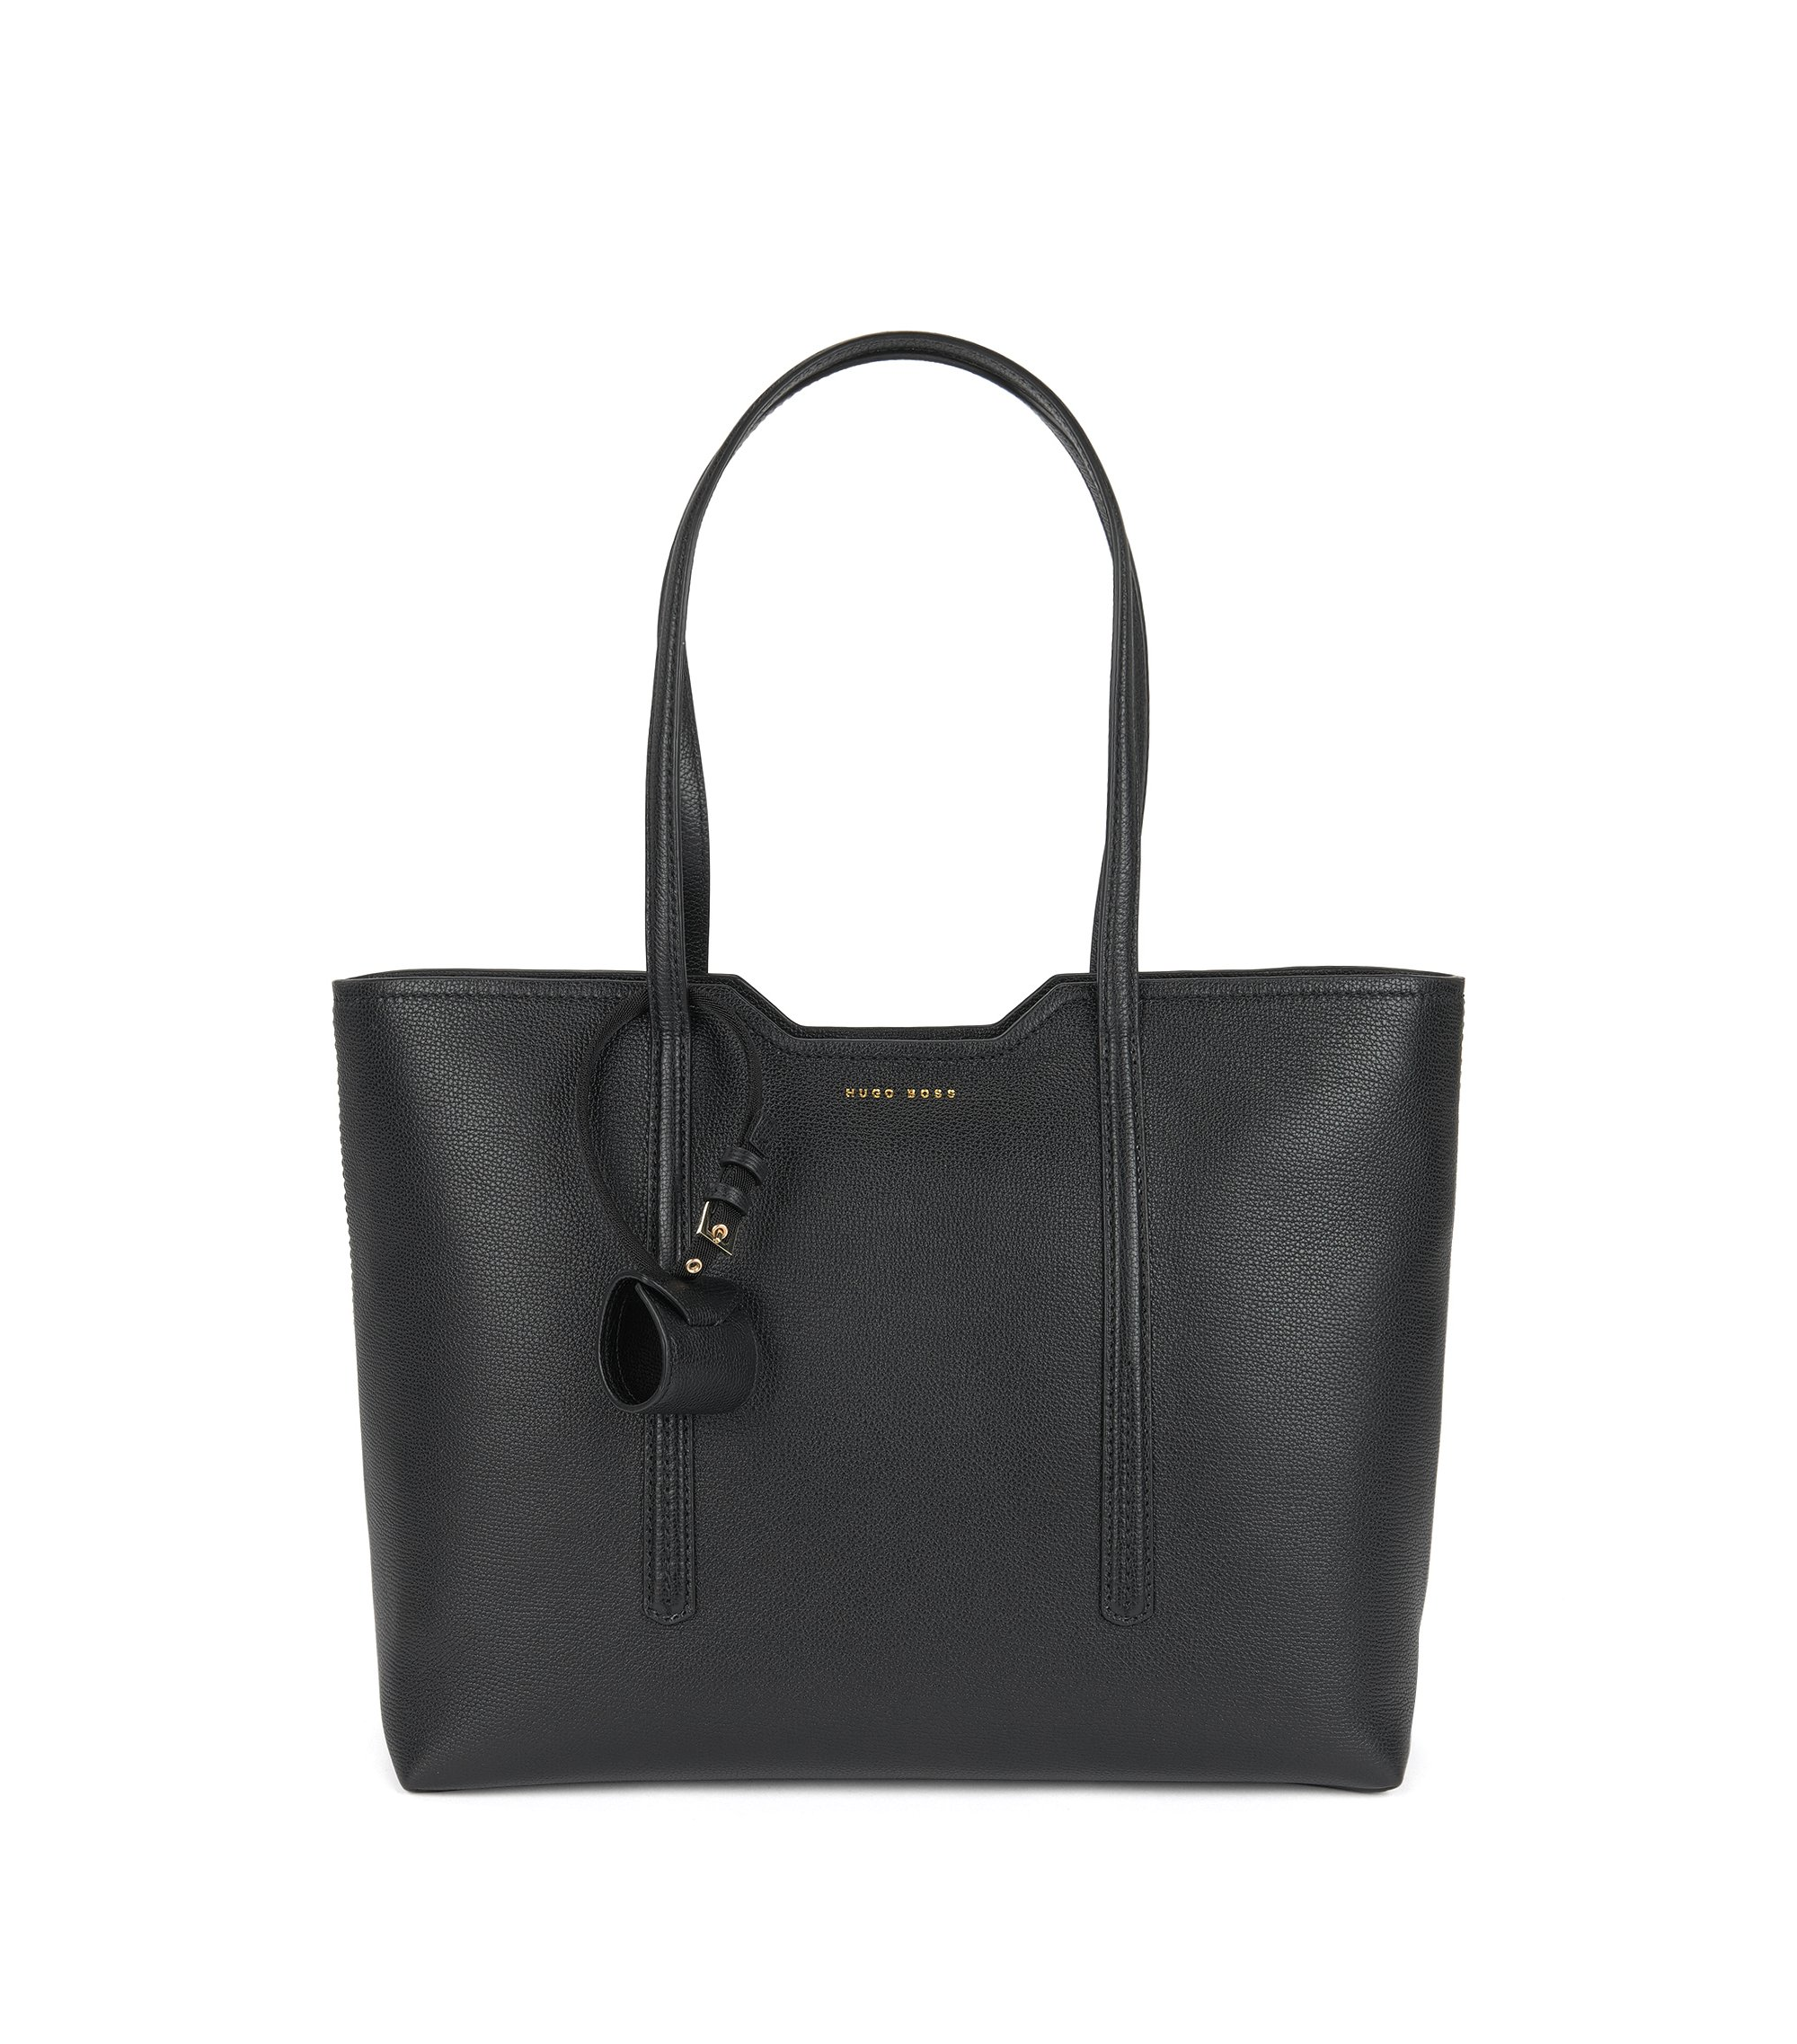 Borsa shopper in pelle italiana, Nero